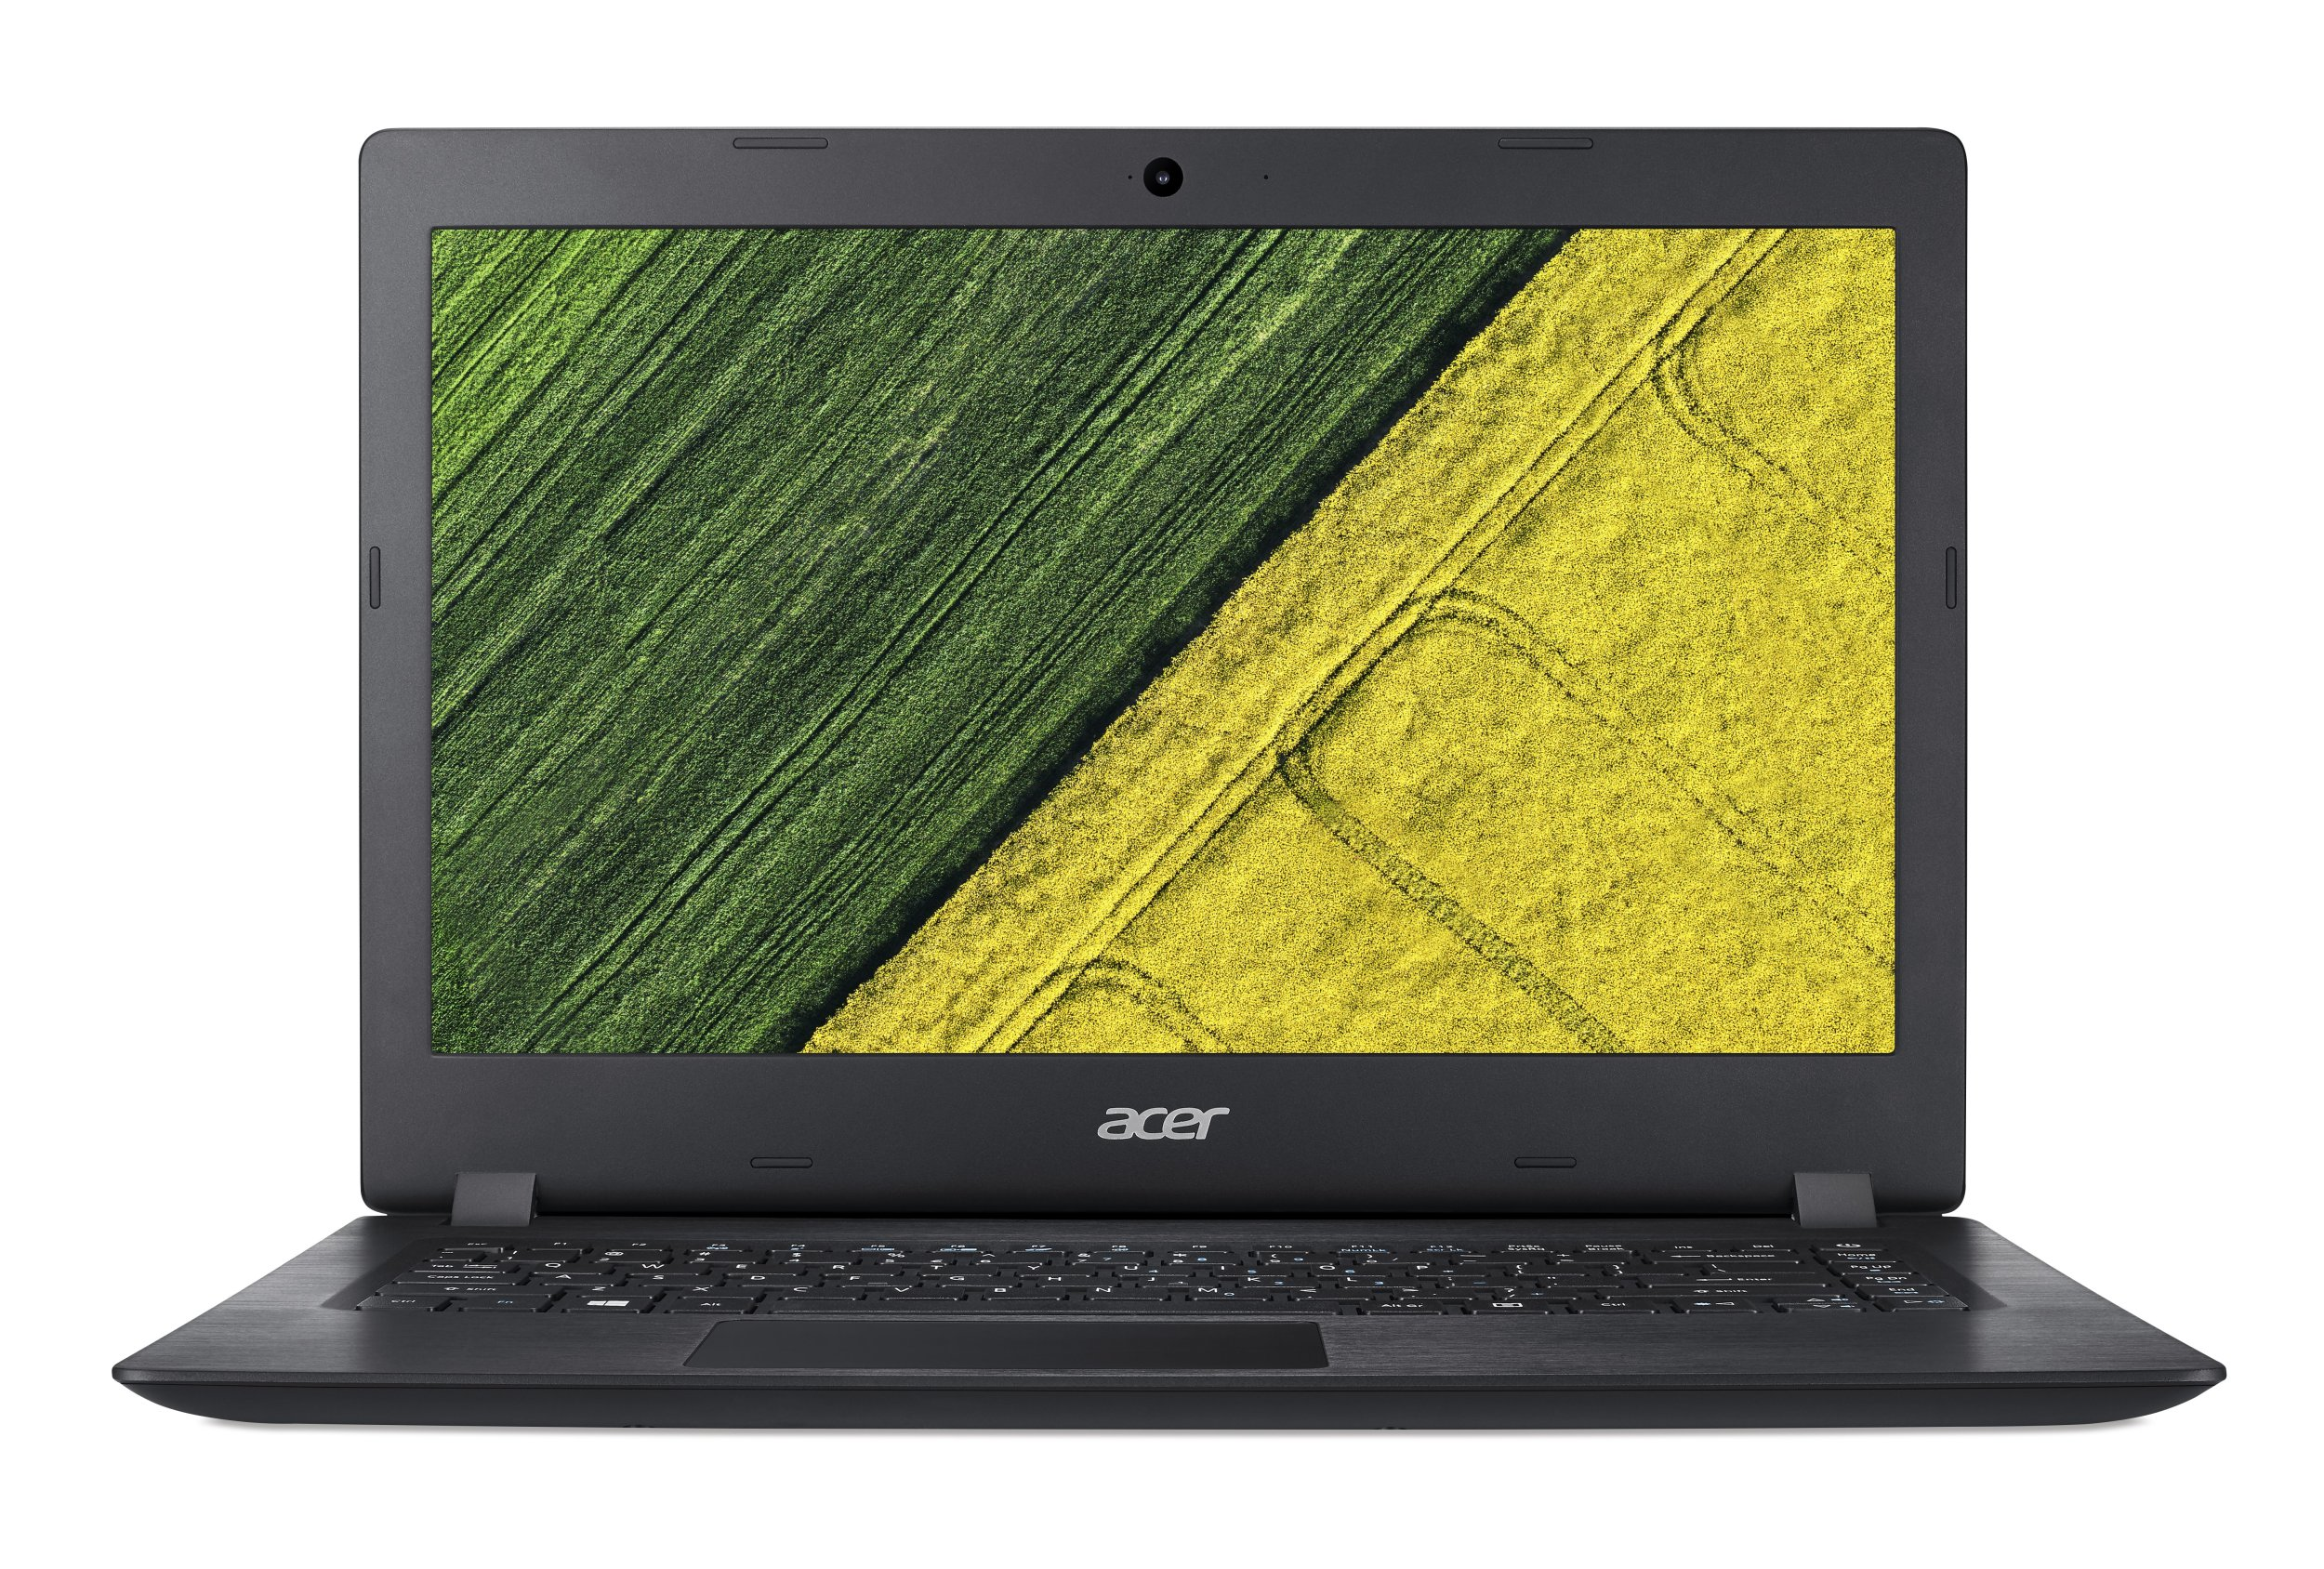 "Acer Aspire 1 (A114-31-P10A) Pentium N4200/4GB+N/A/eMMC 64GB+N/A/HD Graphics/14"" HD matný/BT/W10 Home/Black"